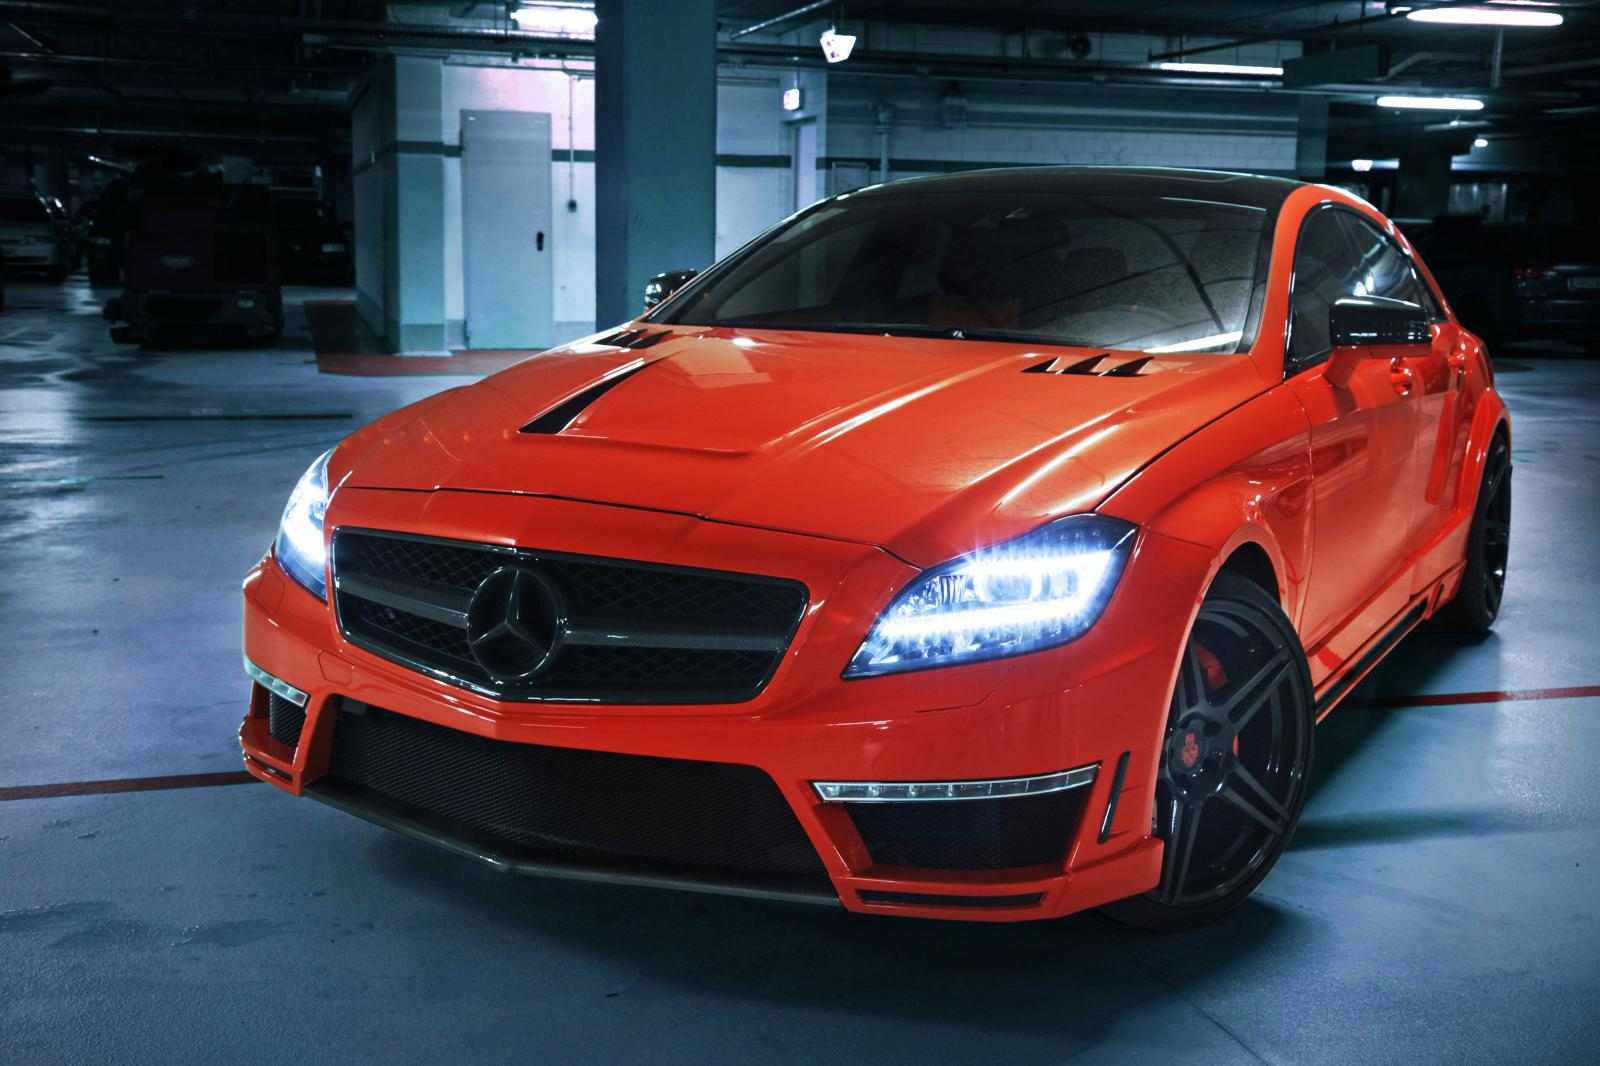 Mercedes CLs63 AMG German Special Customs